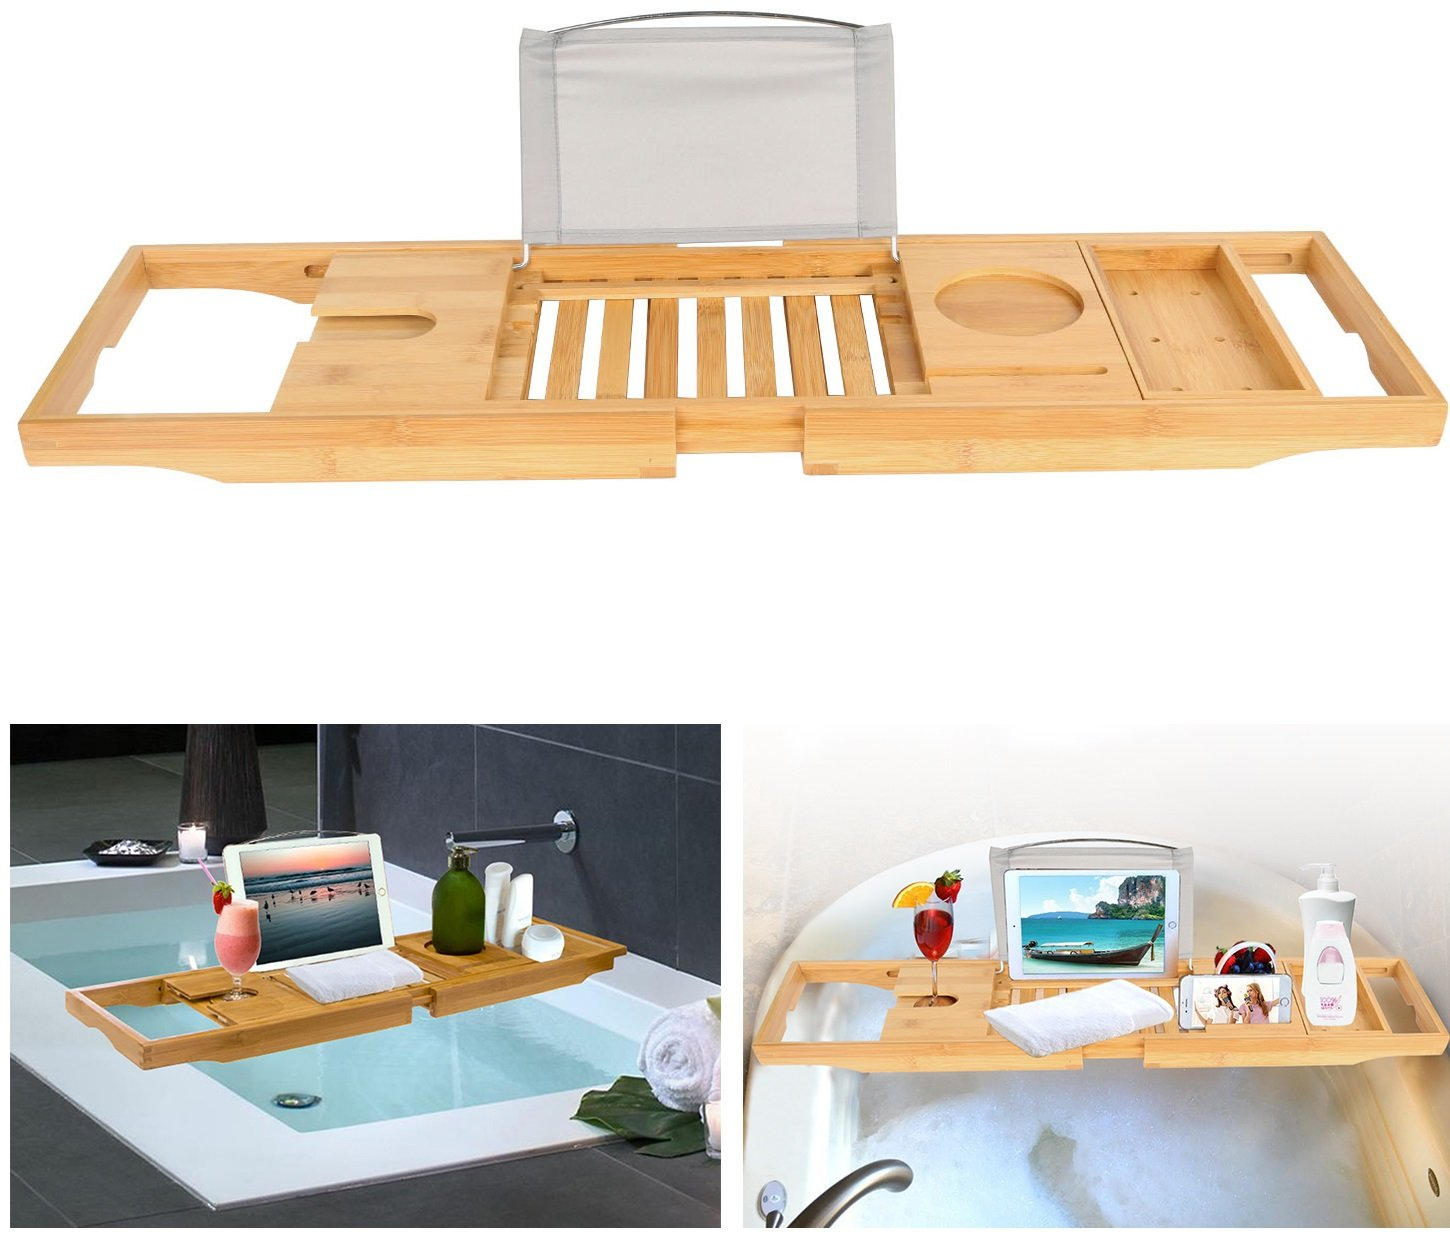 【Water Resistant/Rust Proof】iMounTEK Bamboo Bathtub Expandable/Adjustable Caddy Tray Organizer- Wine Glass Holder, Book/Tablet Holder, Mug/Cup/Phone/Towel/Slot. Non-Slip Rubber Base W/ Sliding Tray